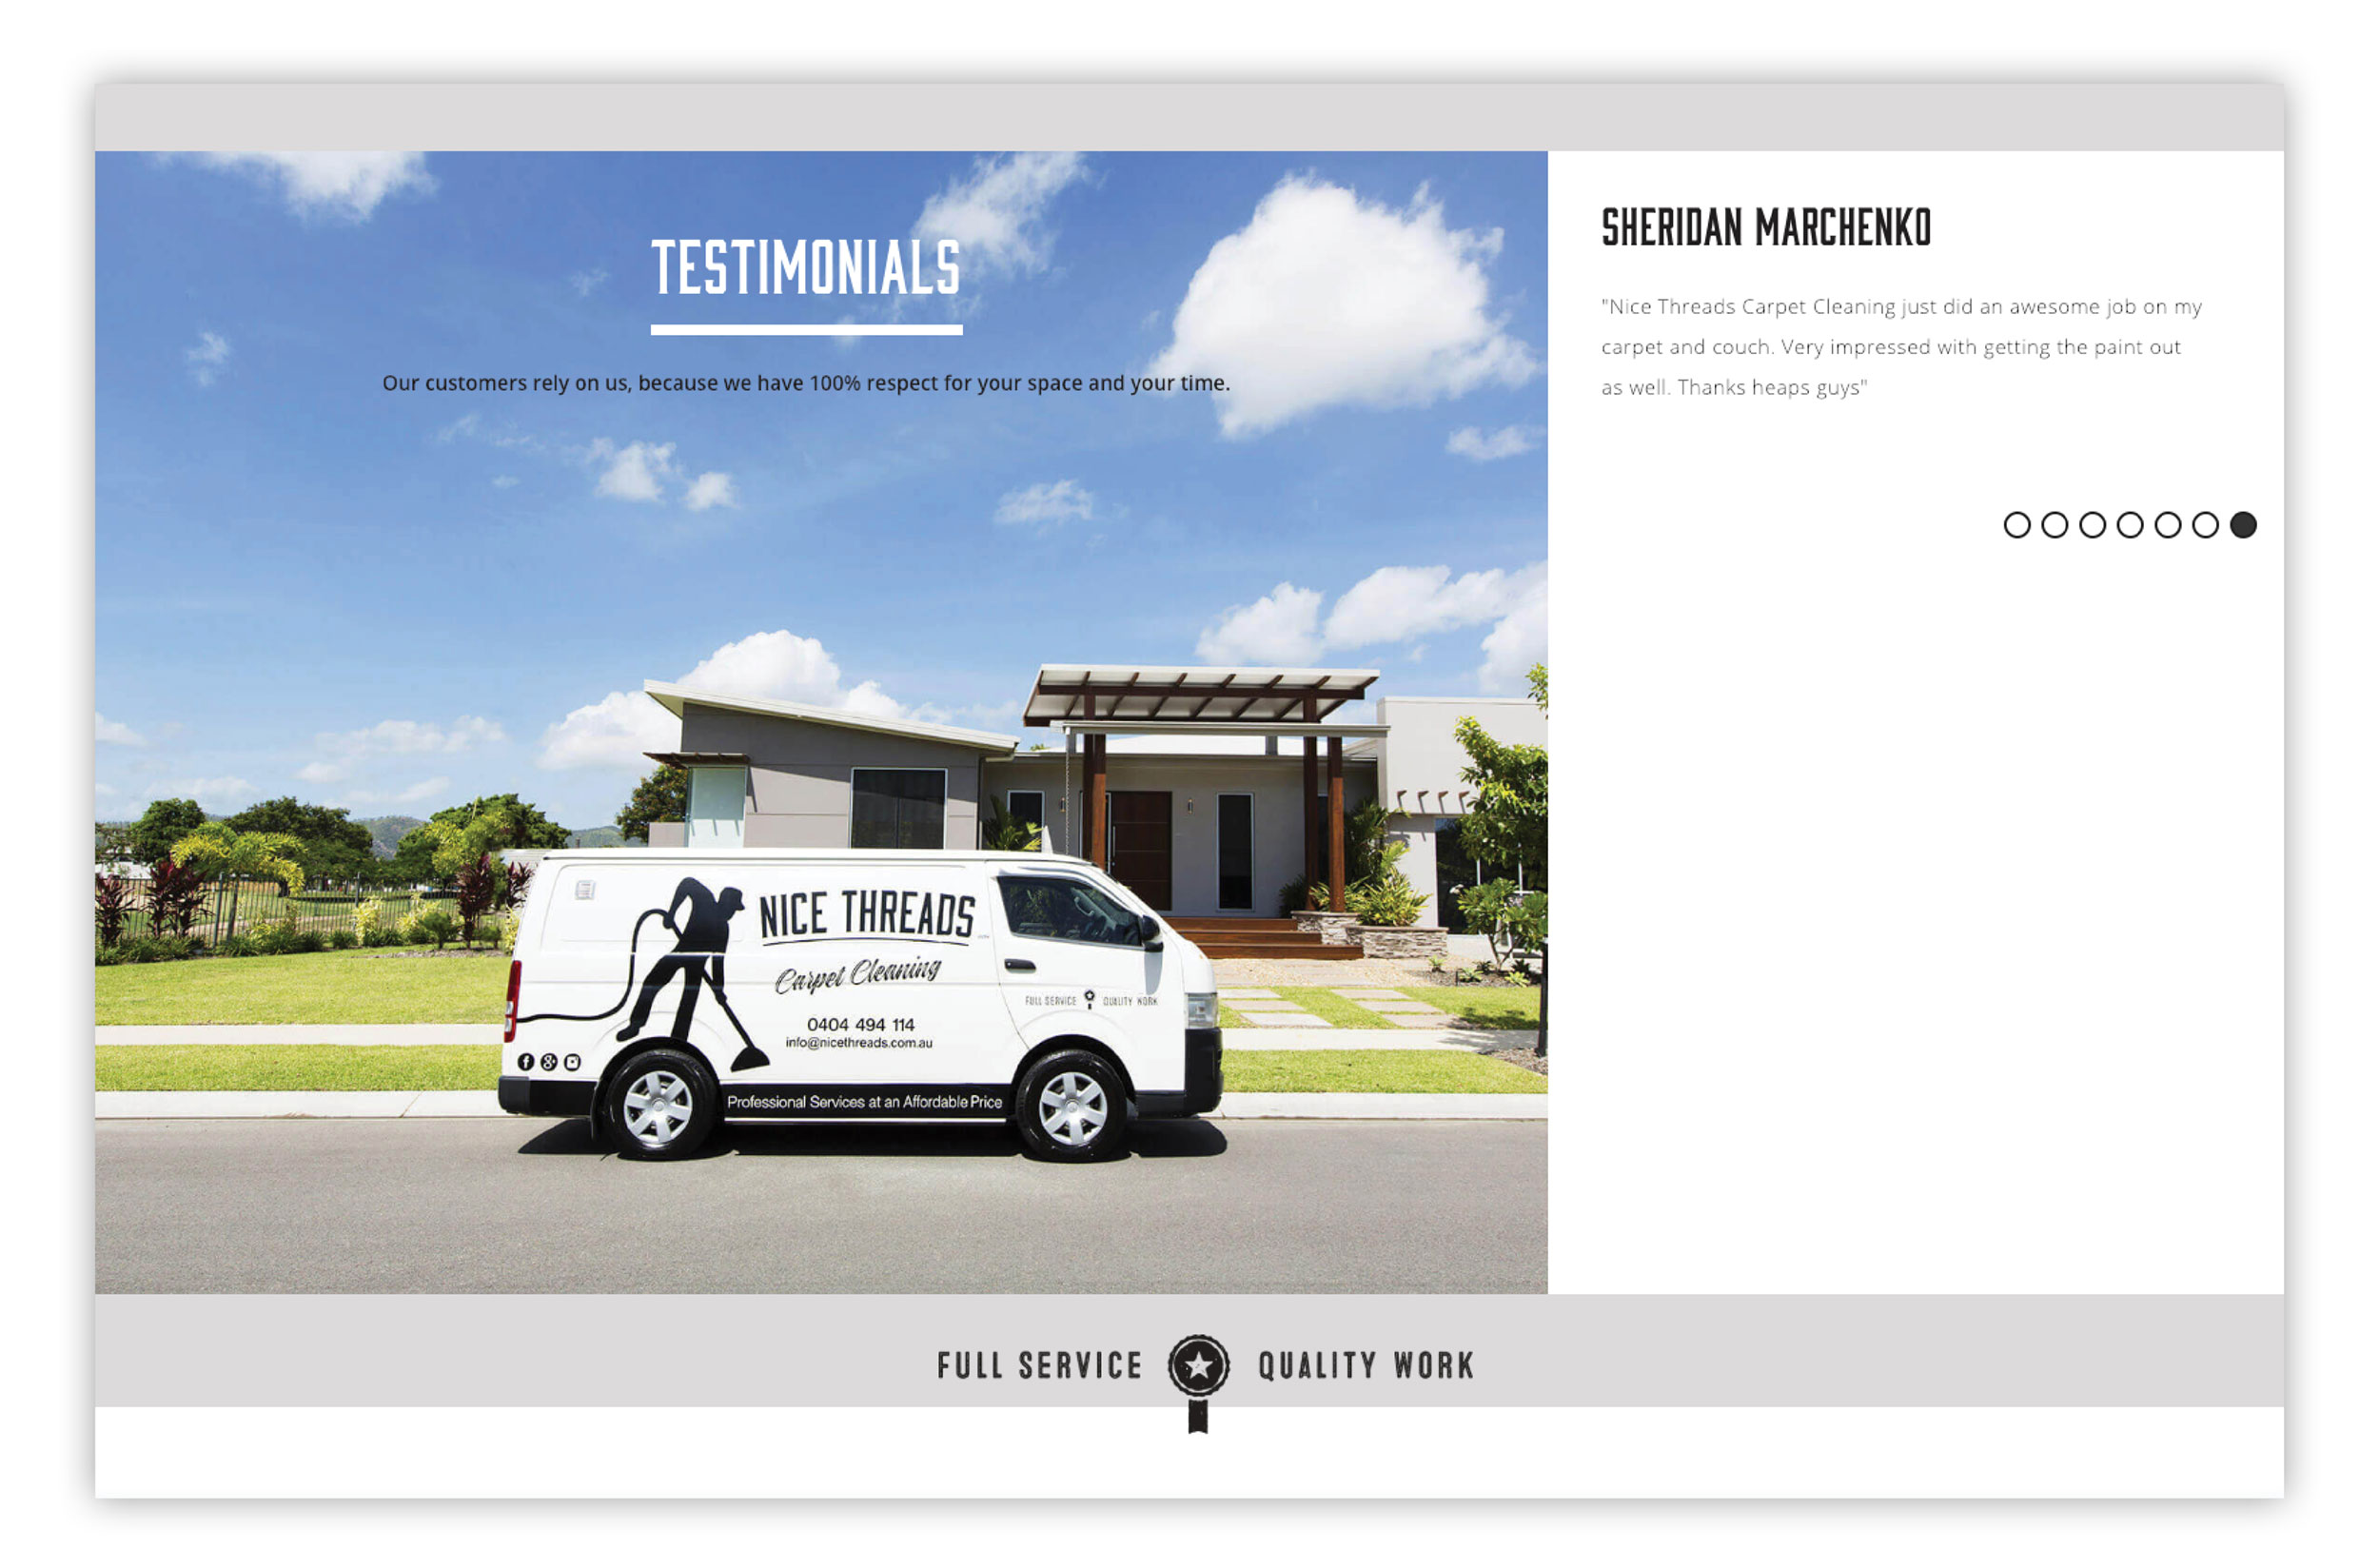 Nice Threads Carpet Cleaning Branding and Web Design